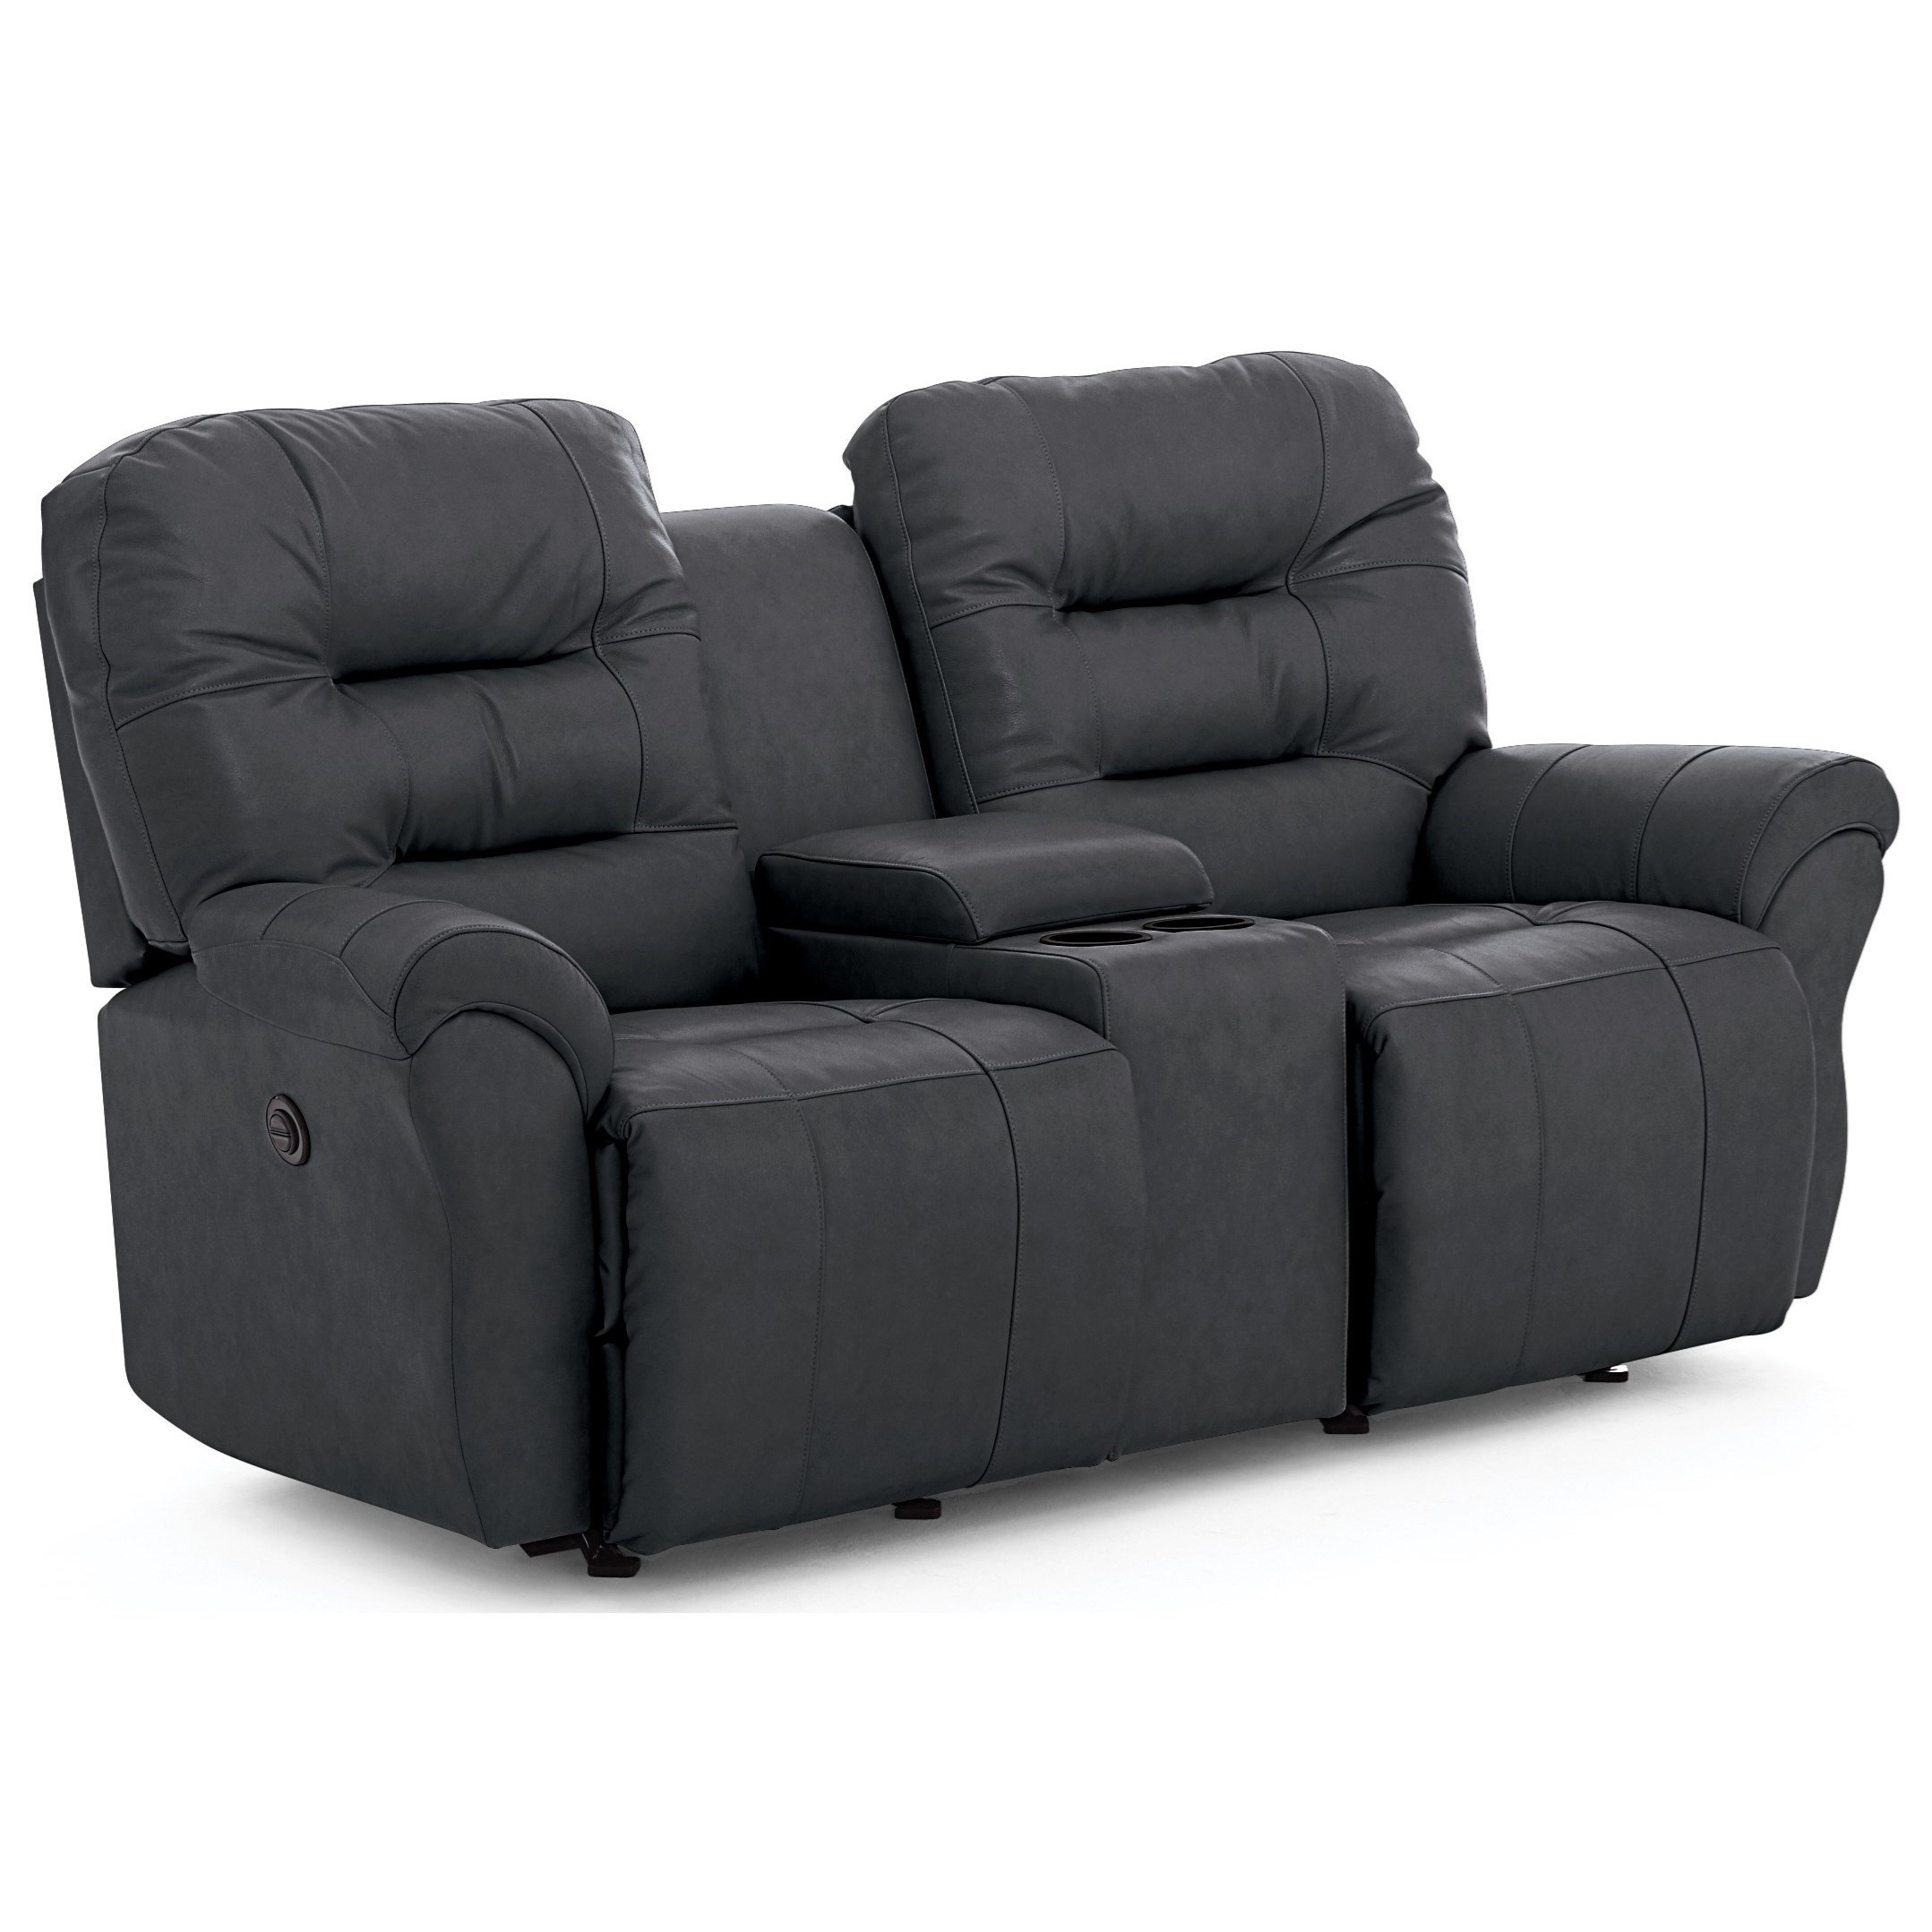 Casual Power Rocking Reclining  Loveseat with Cupholder Storage Console